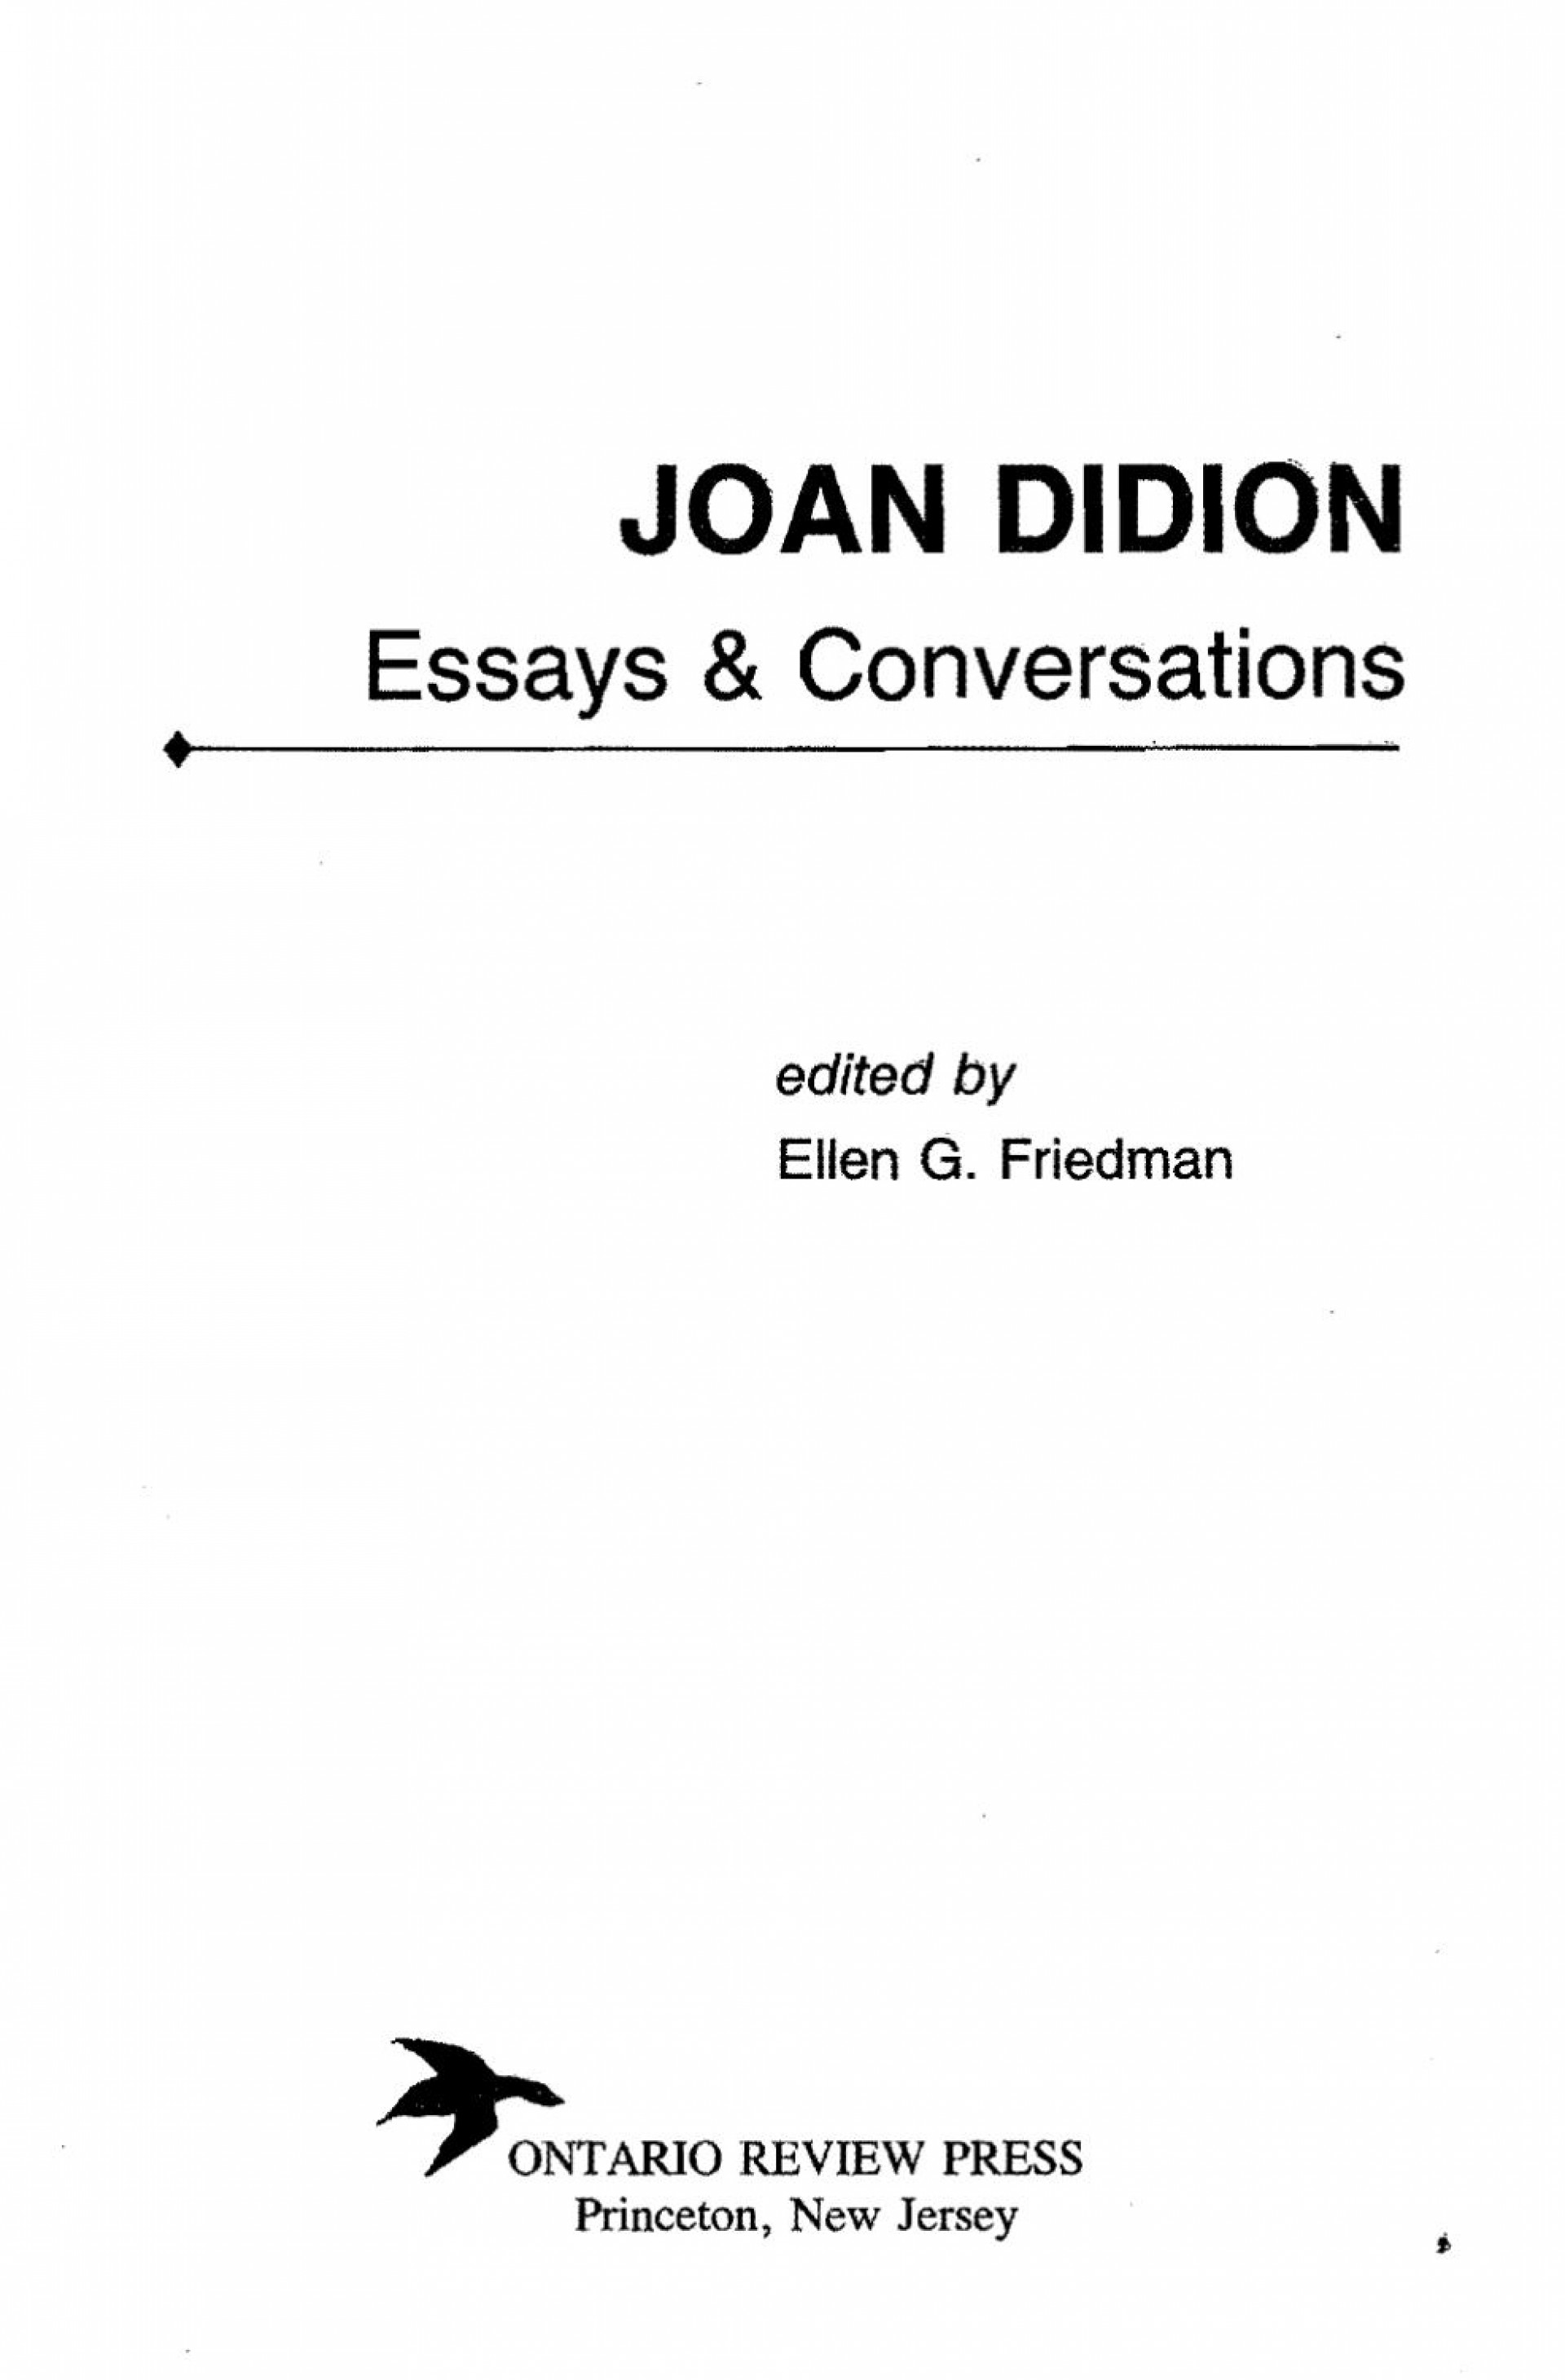 010 page 1 essays by joan didion essay thatsnotus